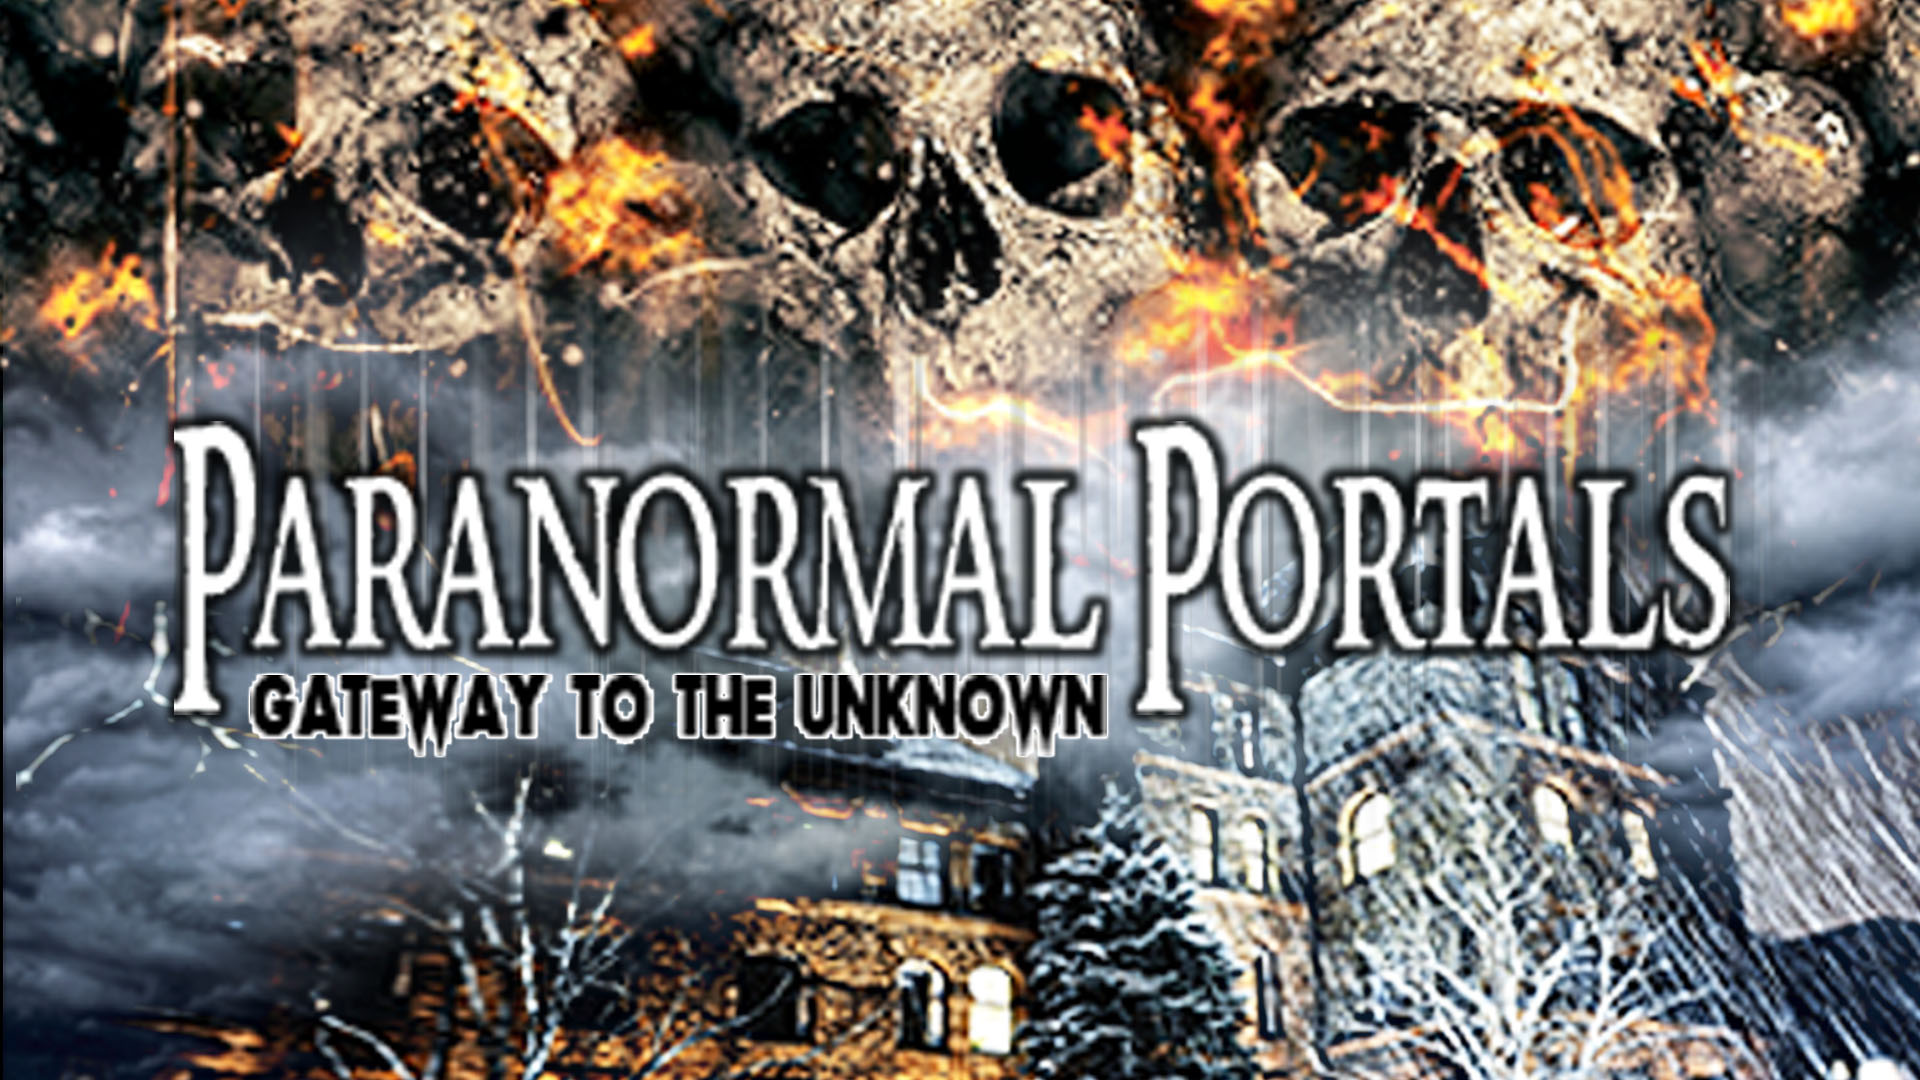 Paranormal Portals - Gateway to the Unknown